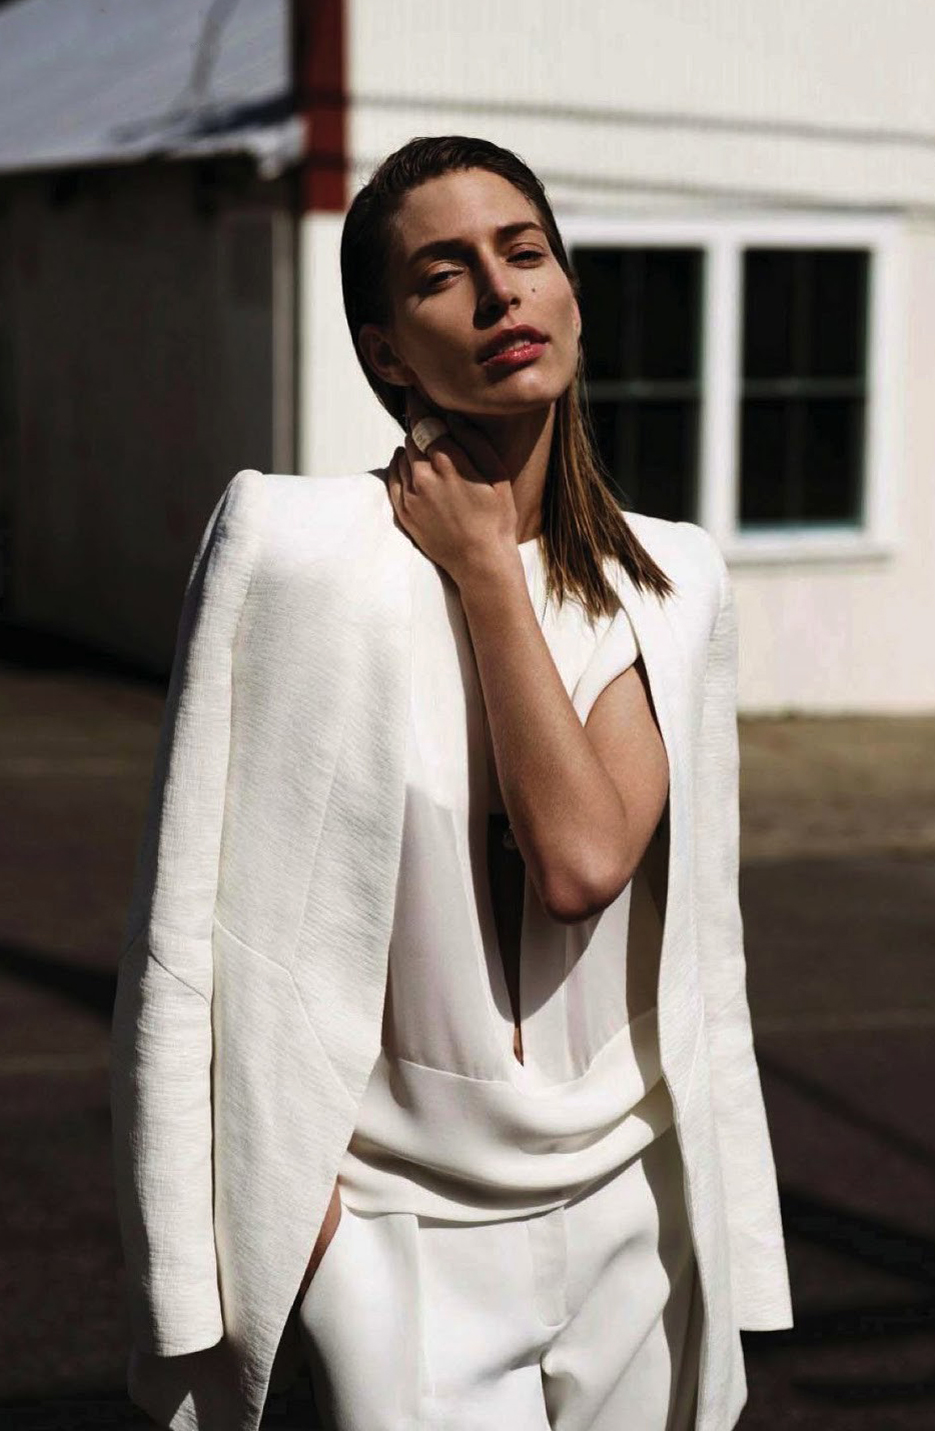 Best quotes about fashion and style from fashion designer Narciso Rodriguez + Linda Jeering wearing Narciso Rodriguez in Sheer Elegance / Vogue Netherlands June 2013 (photography: Annemarieke Van Drimmelen, styling: Dimphy Den Otter) via www.fashionedbylove.co.uk british fashion blog